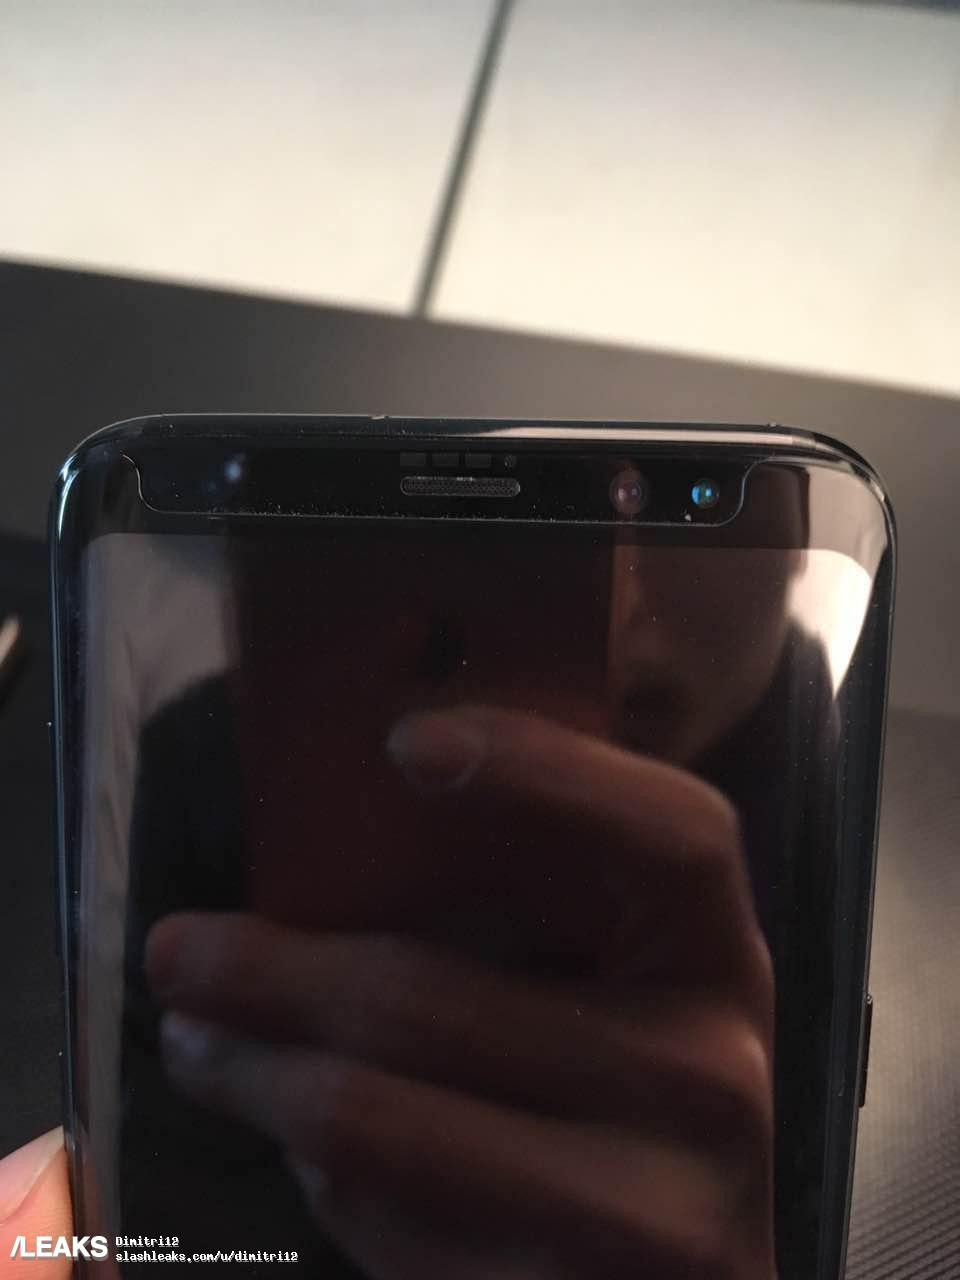 1488891709_alleged-galaxy-s8-shots-from-a-screen-protector-maker-1.jpg